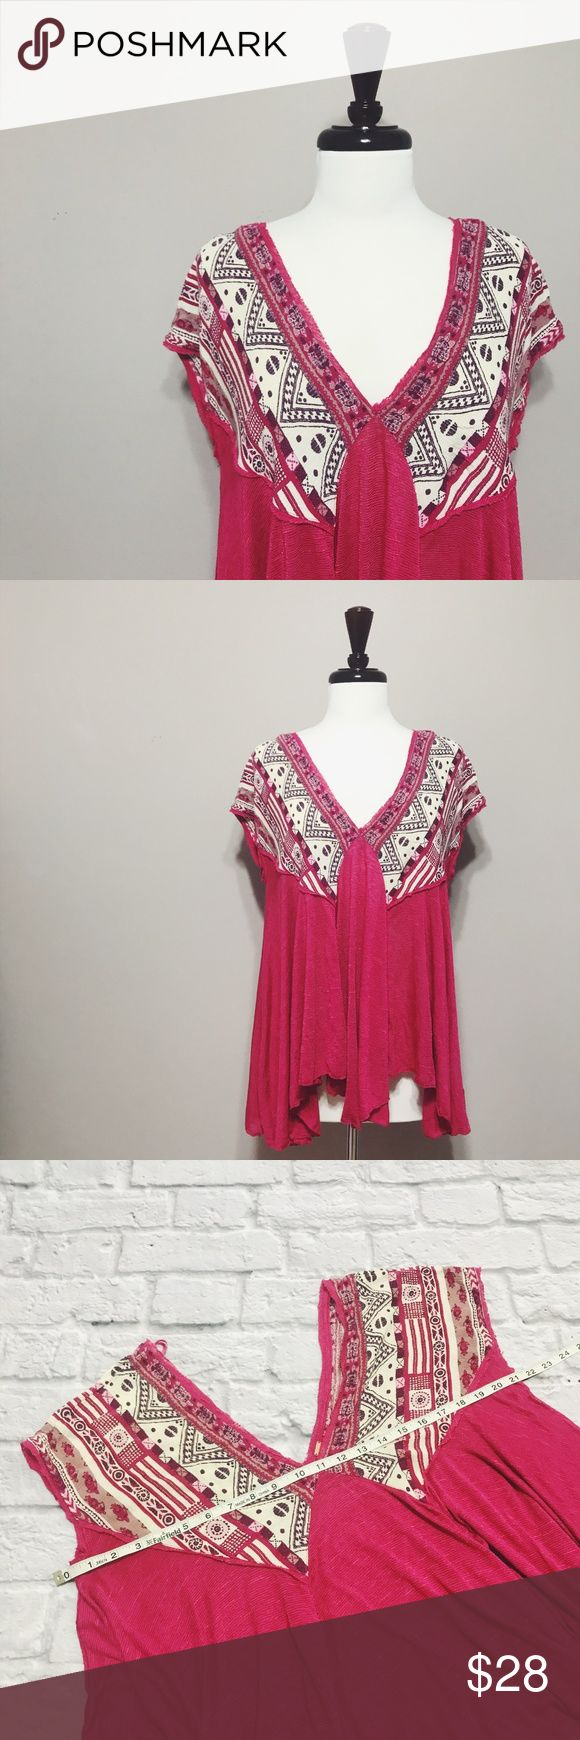 """Free People Pink We Are Golden Top Free People Pink Printed Deep V Top condition: EUC (excellent used condition) color: after doing research, this is apparently the """"red combo"""" but it definitely looks more pink than red fit: oversized/loose fit other: N/A Free People Tops"""